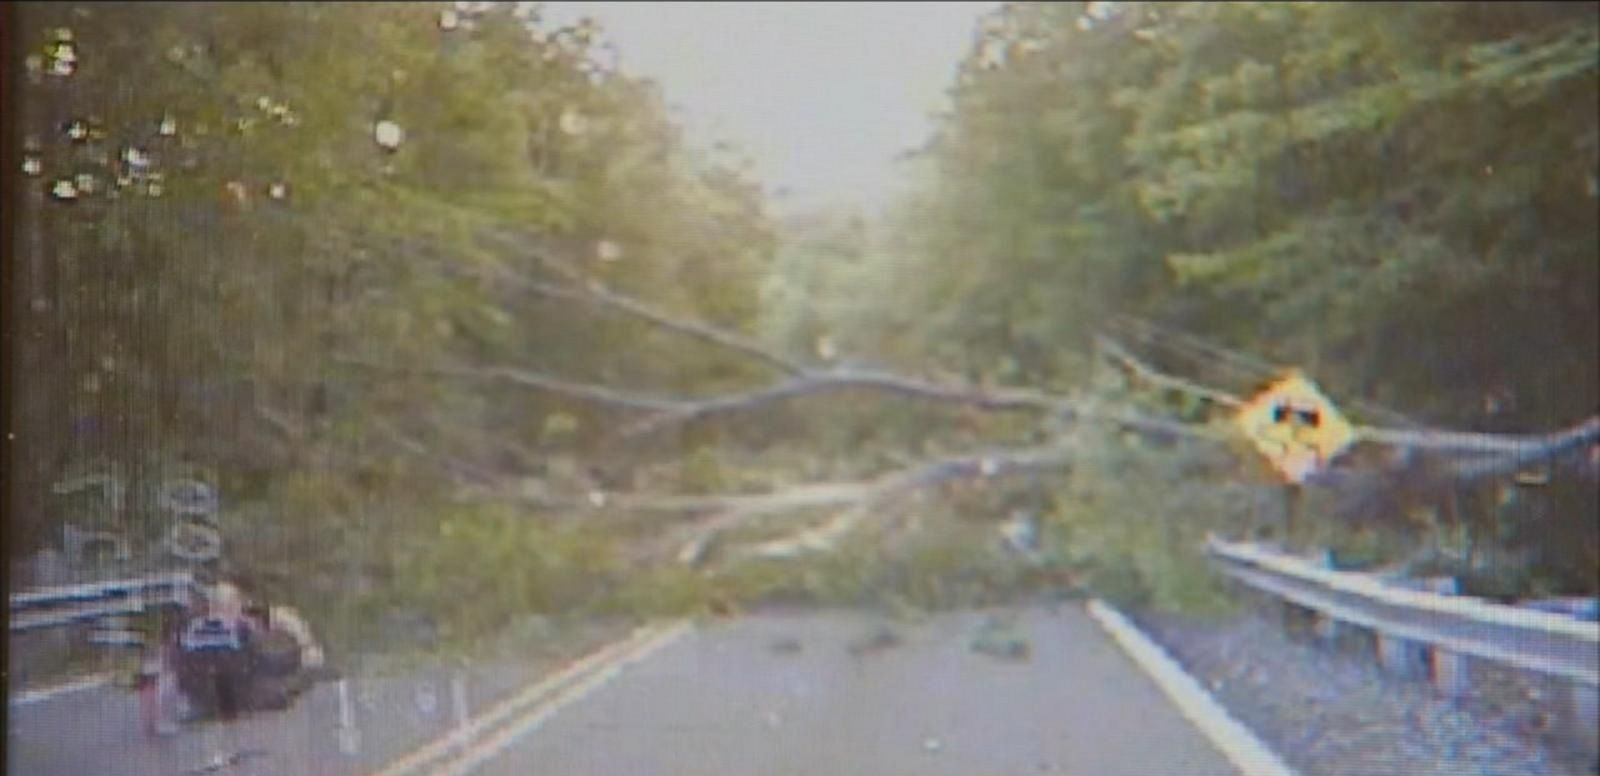 Dashcam video caught the tree falling onto the officer in Ridgewood on Friday morning.